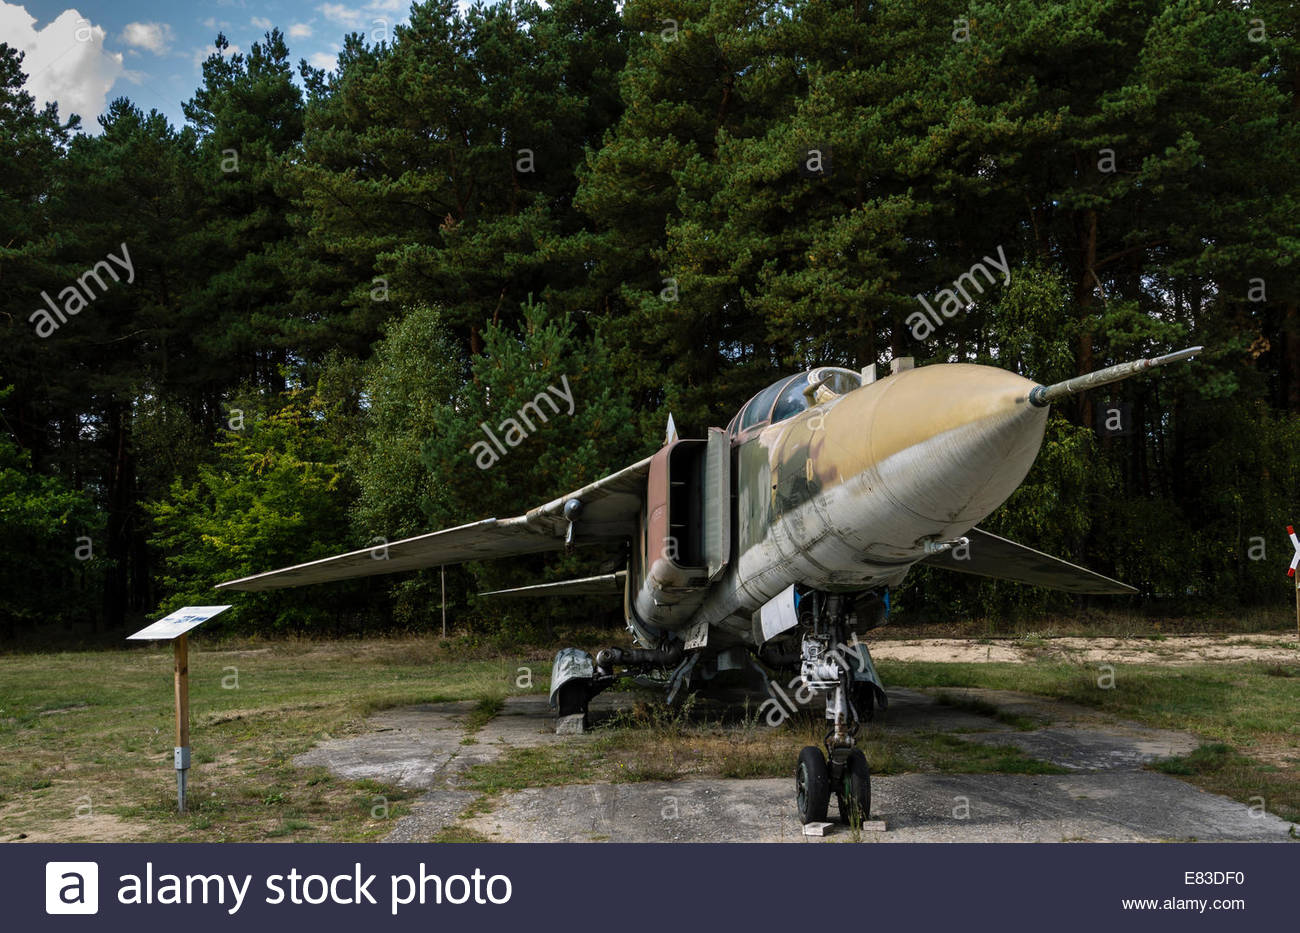 Old Soviet Airfield base at Finow  former DDR East Germany Mig 23  Museum - Stock Image